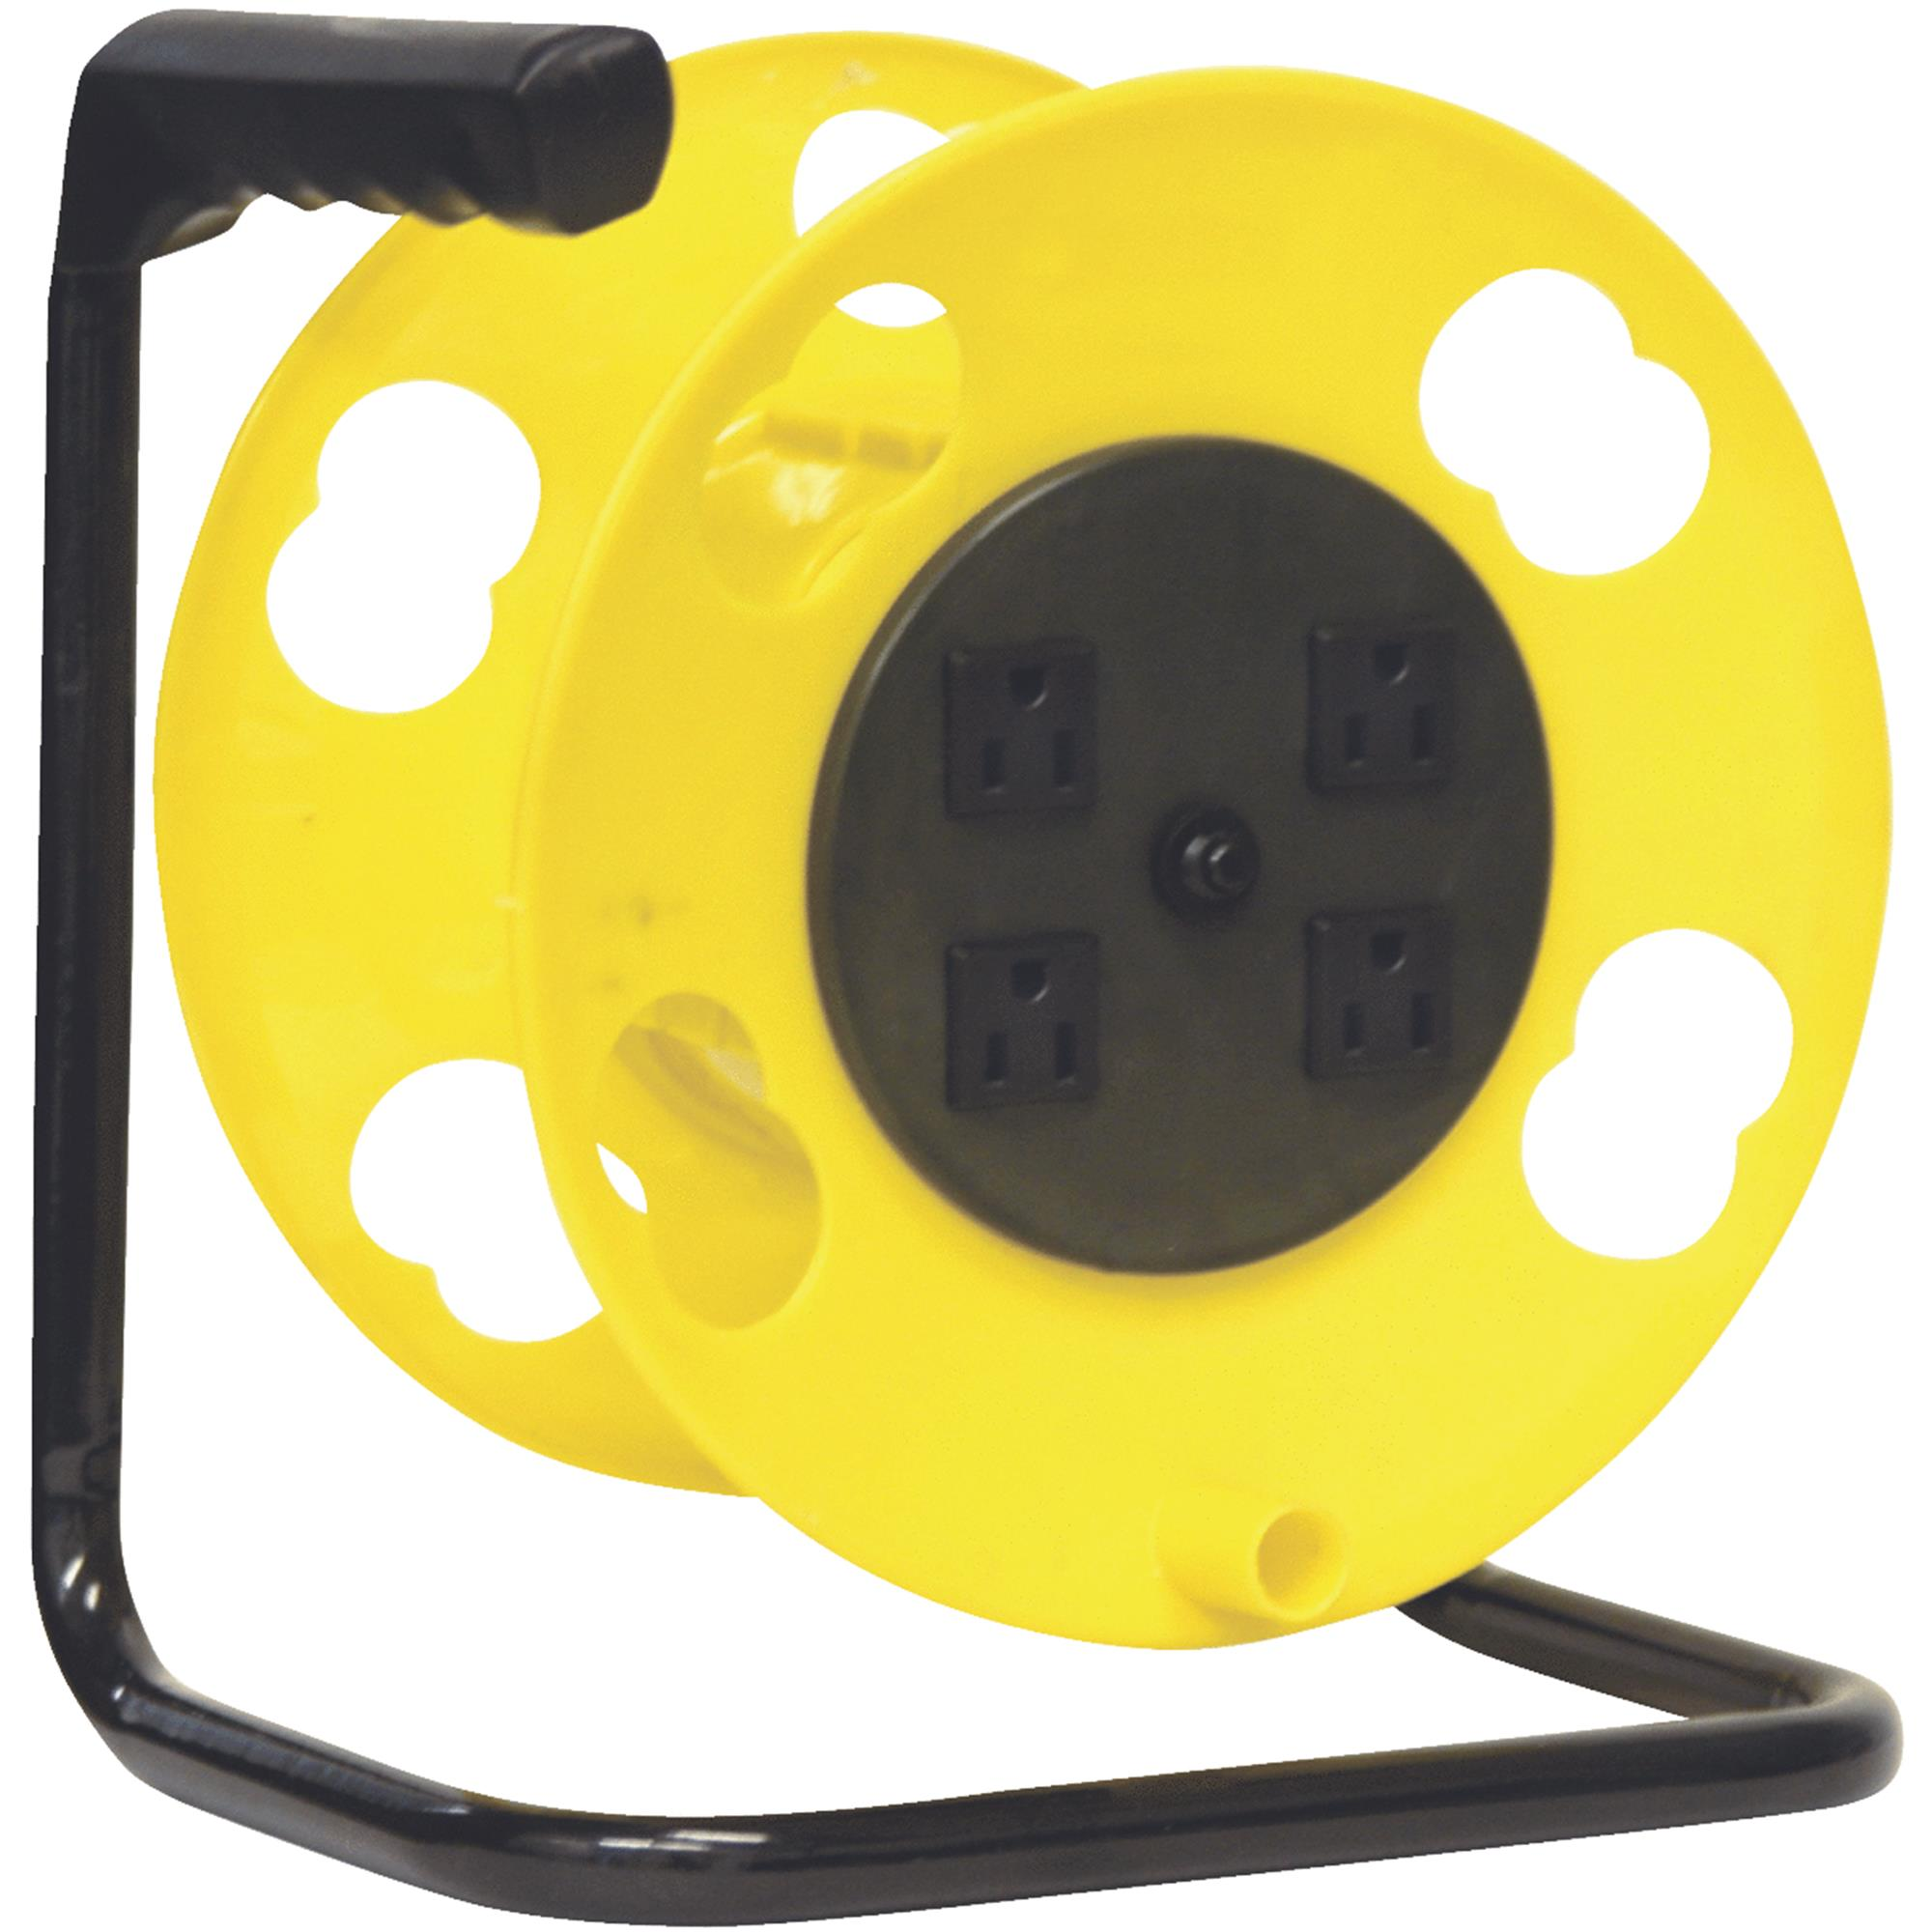 bayco sl 2000pdq cord storage reel with 4 outlets and resettable 15a rh walmart com